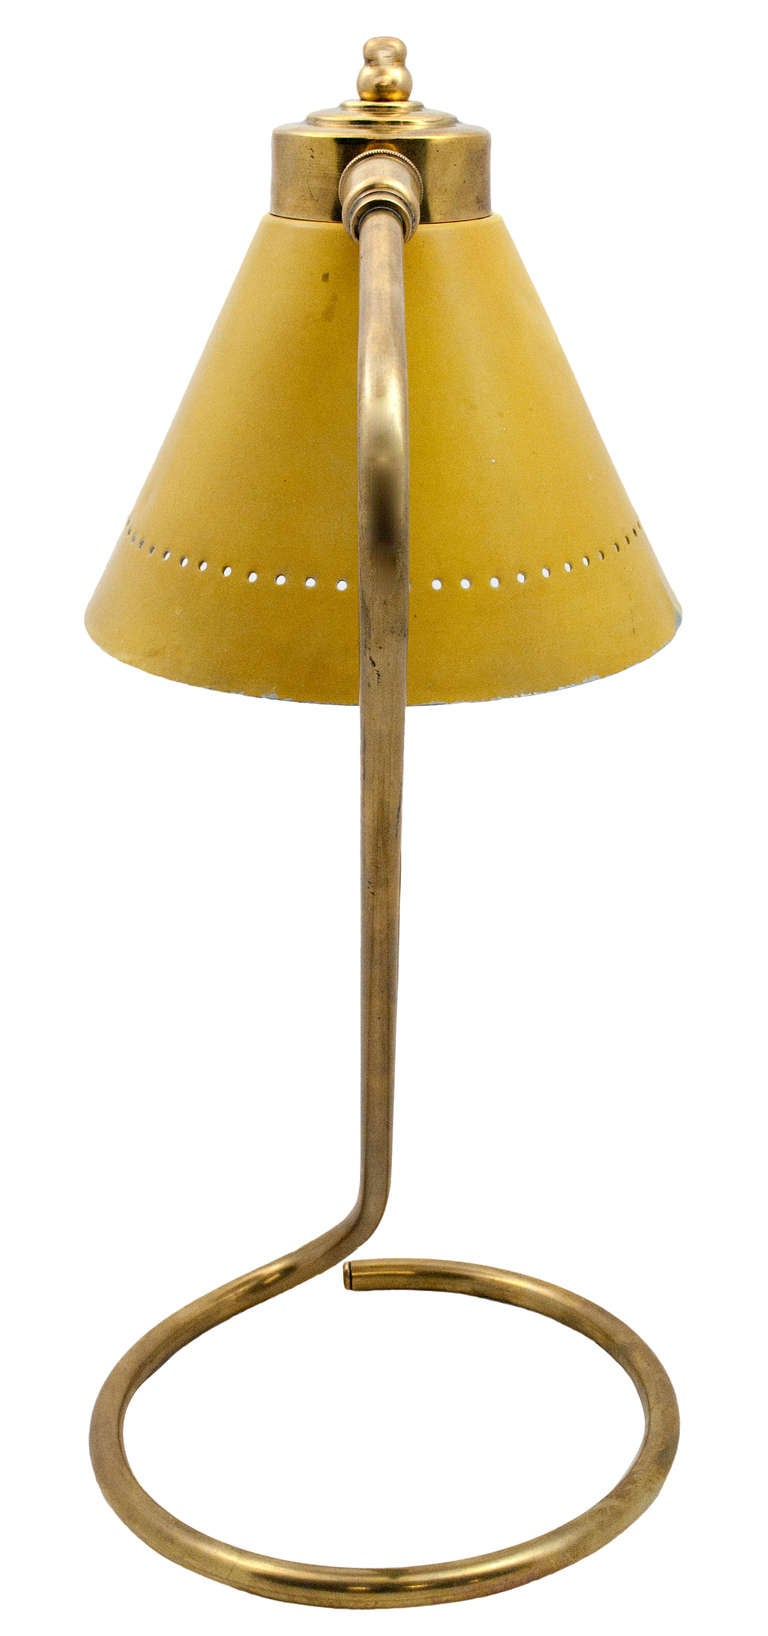 A scroll curved gilt metal desk lamp with it original yellow painted tole shade. From Branca Casa B Collection.